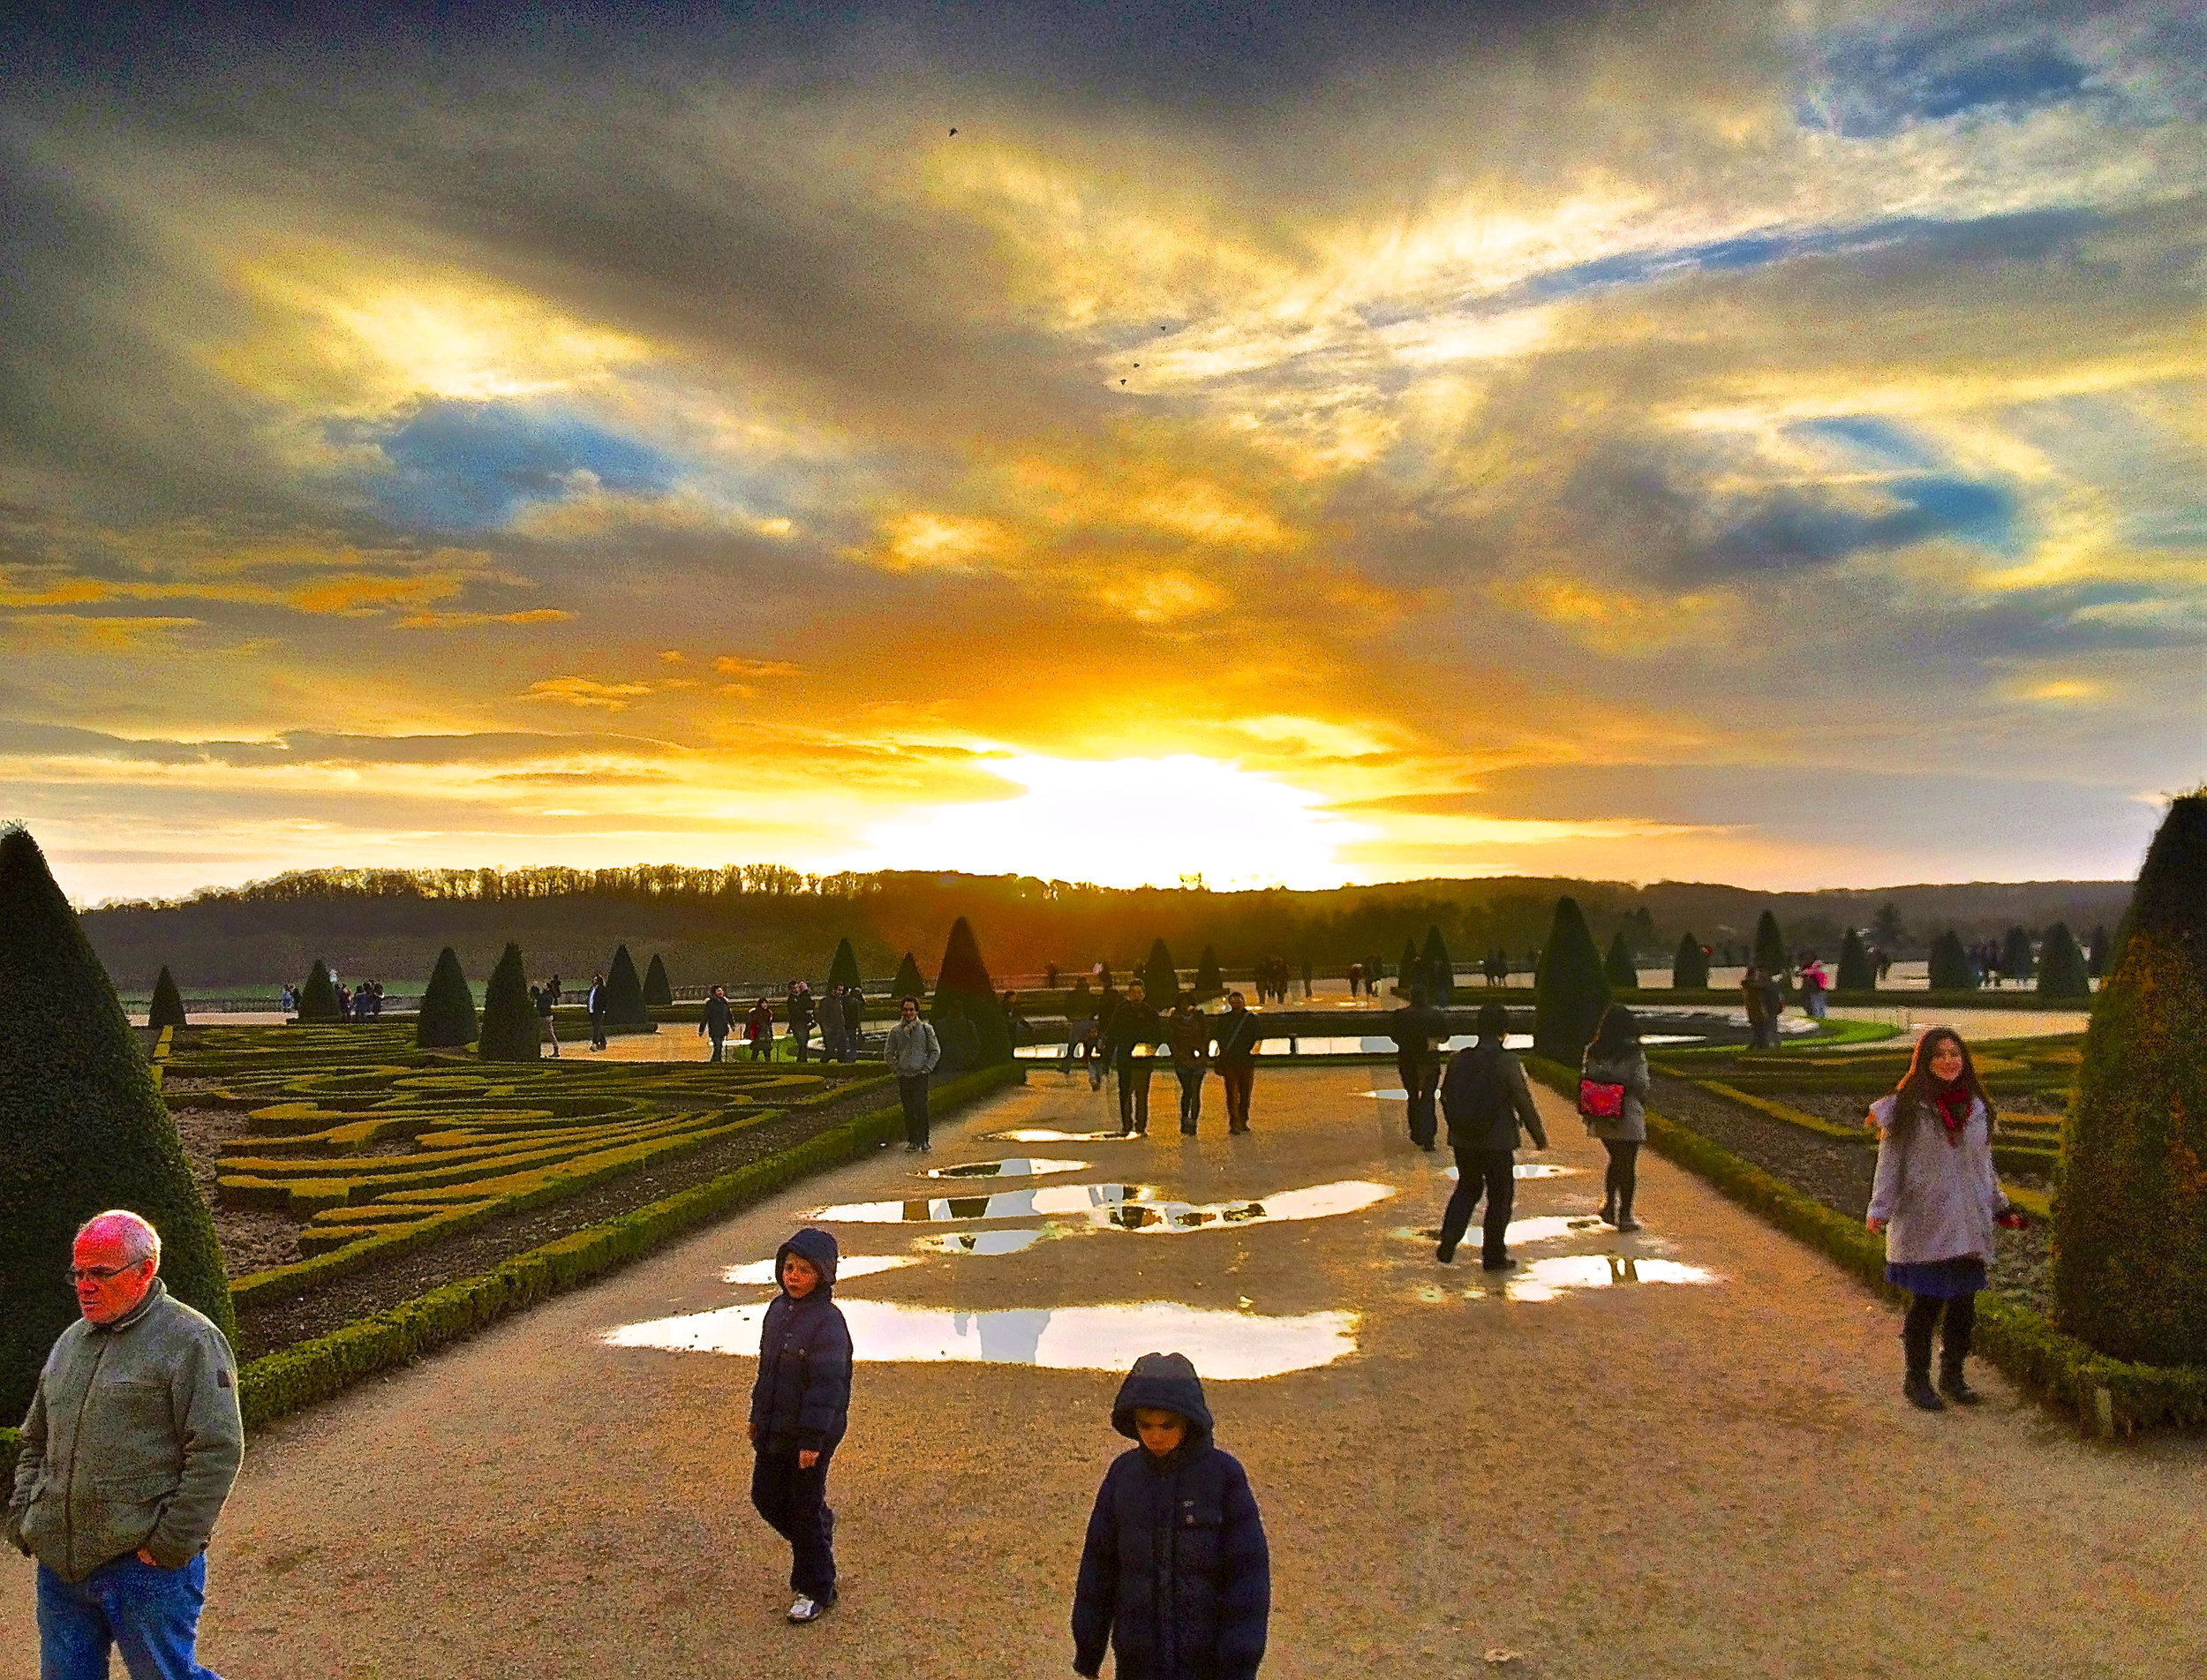 ghosts in the garden at sunset, Palace De Versailles, France